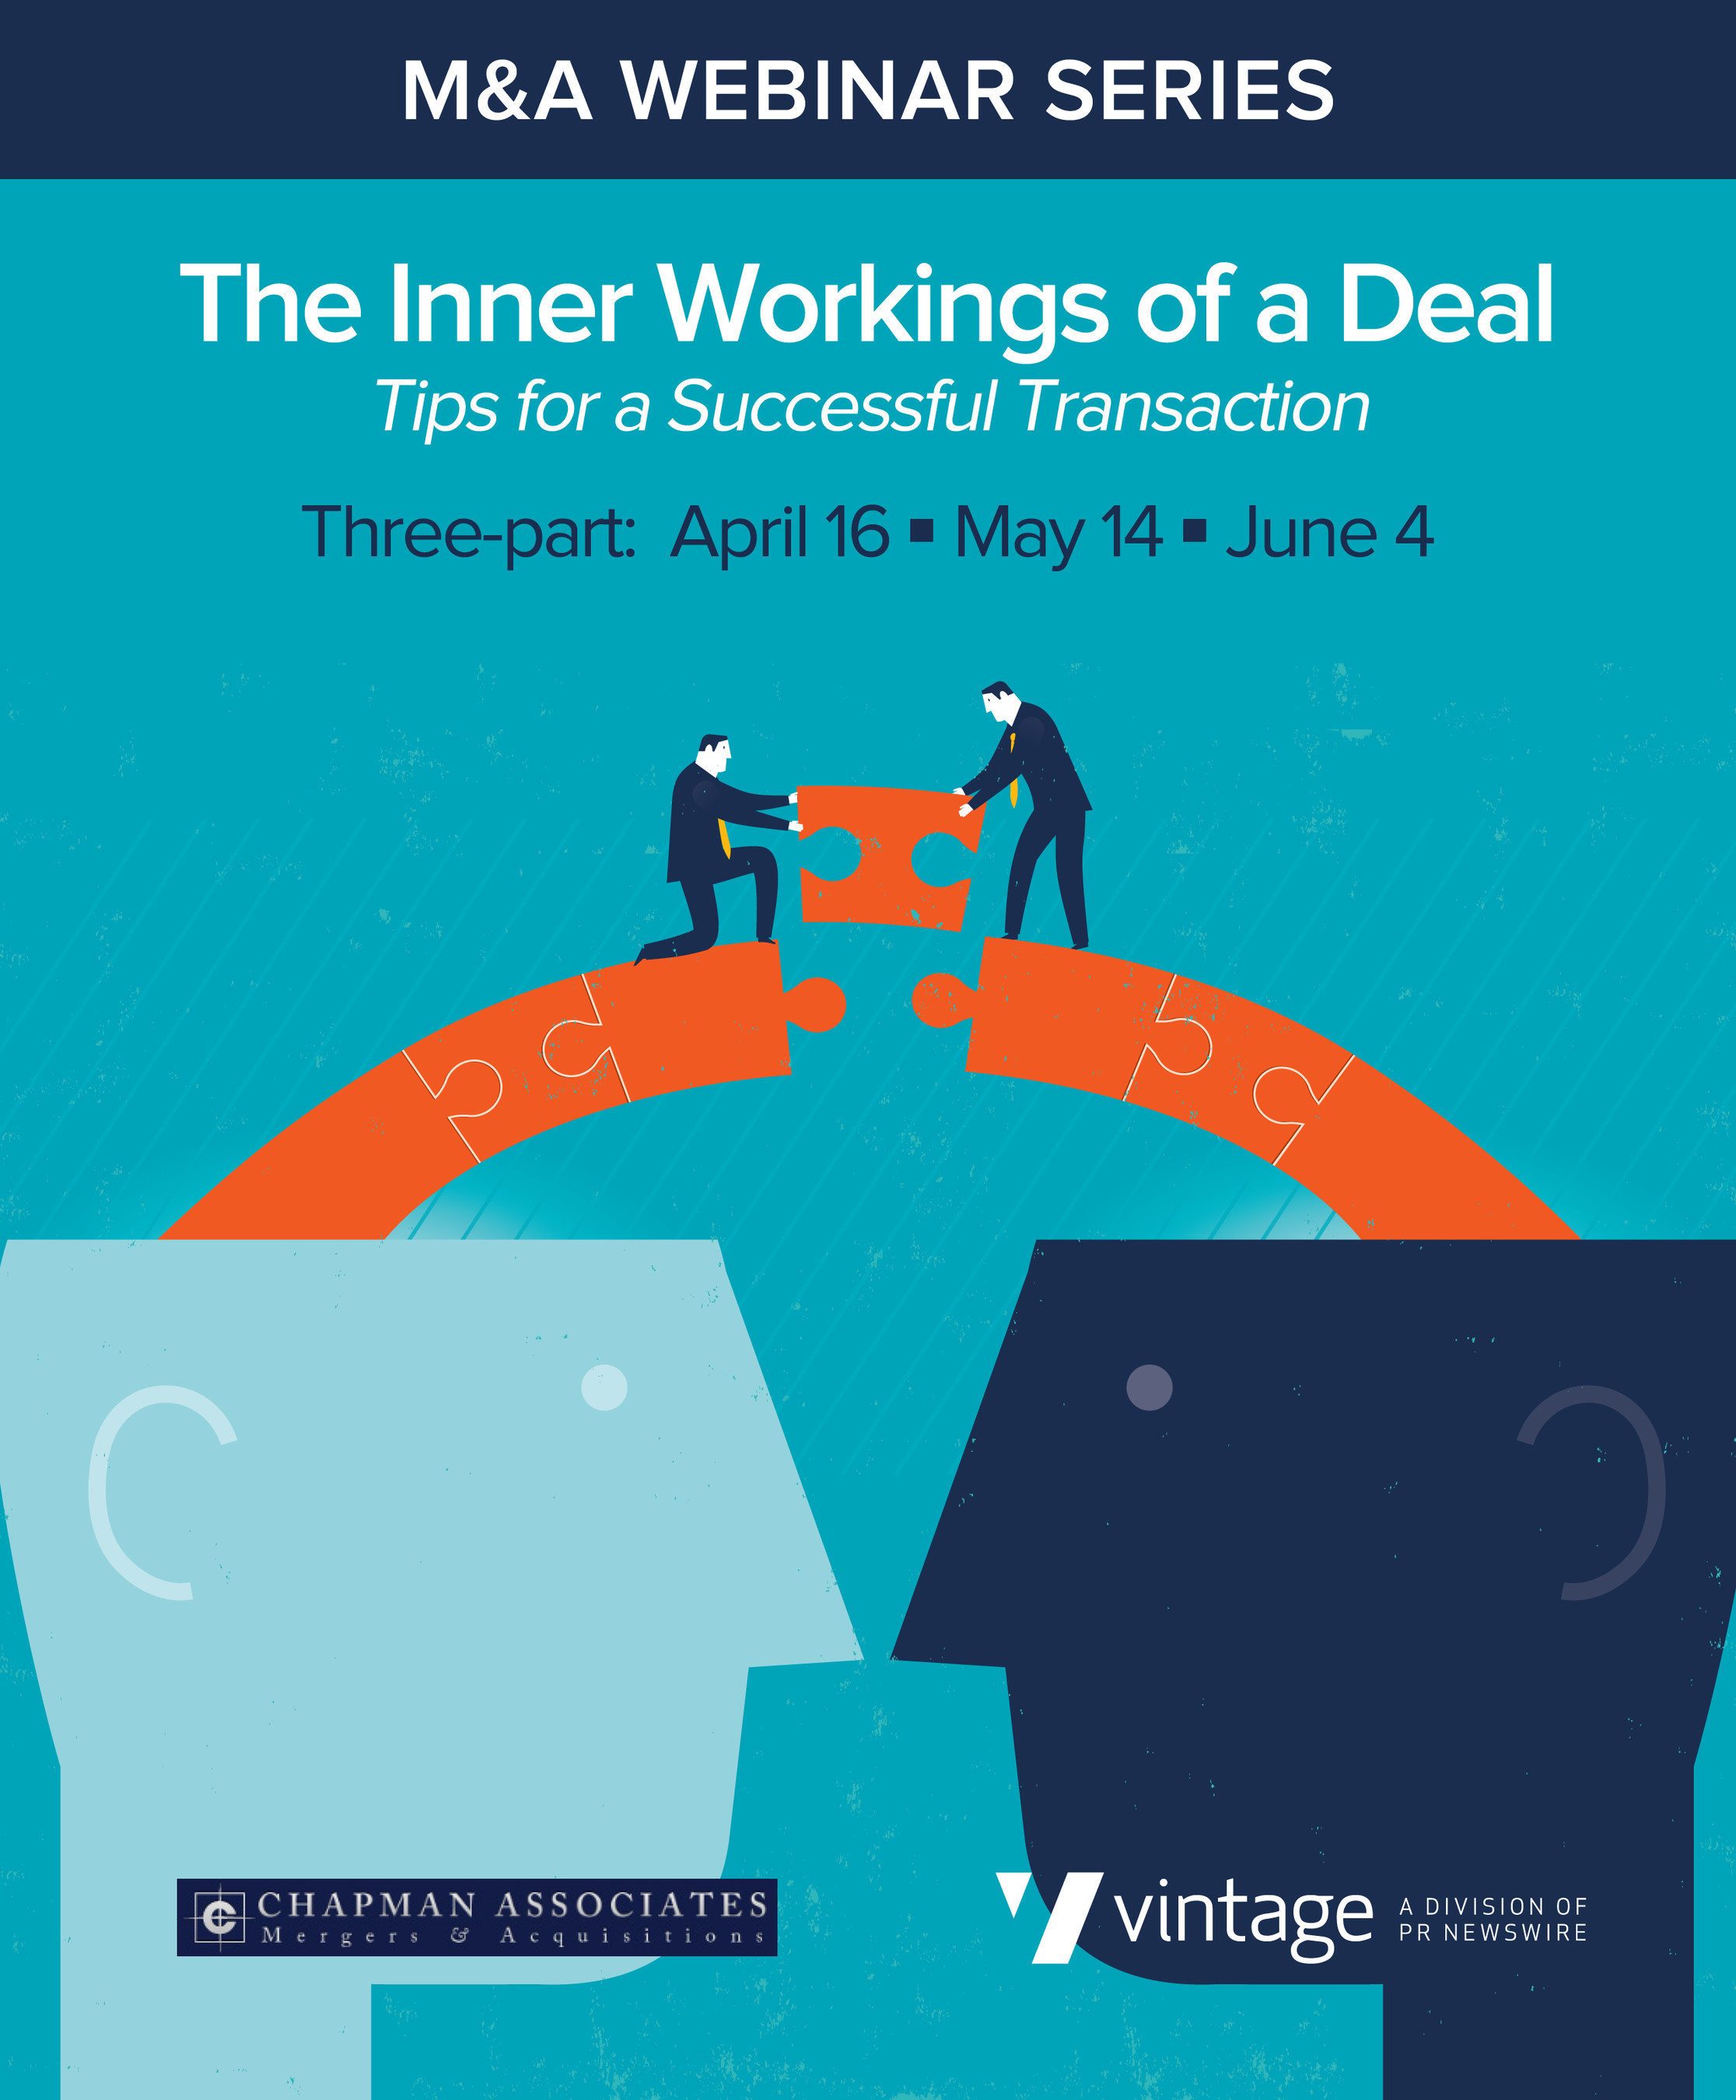 """""""The Inner Workings of a Deal"""" video webinar and whitepaper series is free to watch and download."""